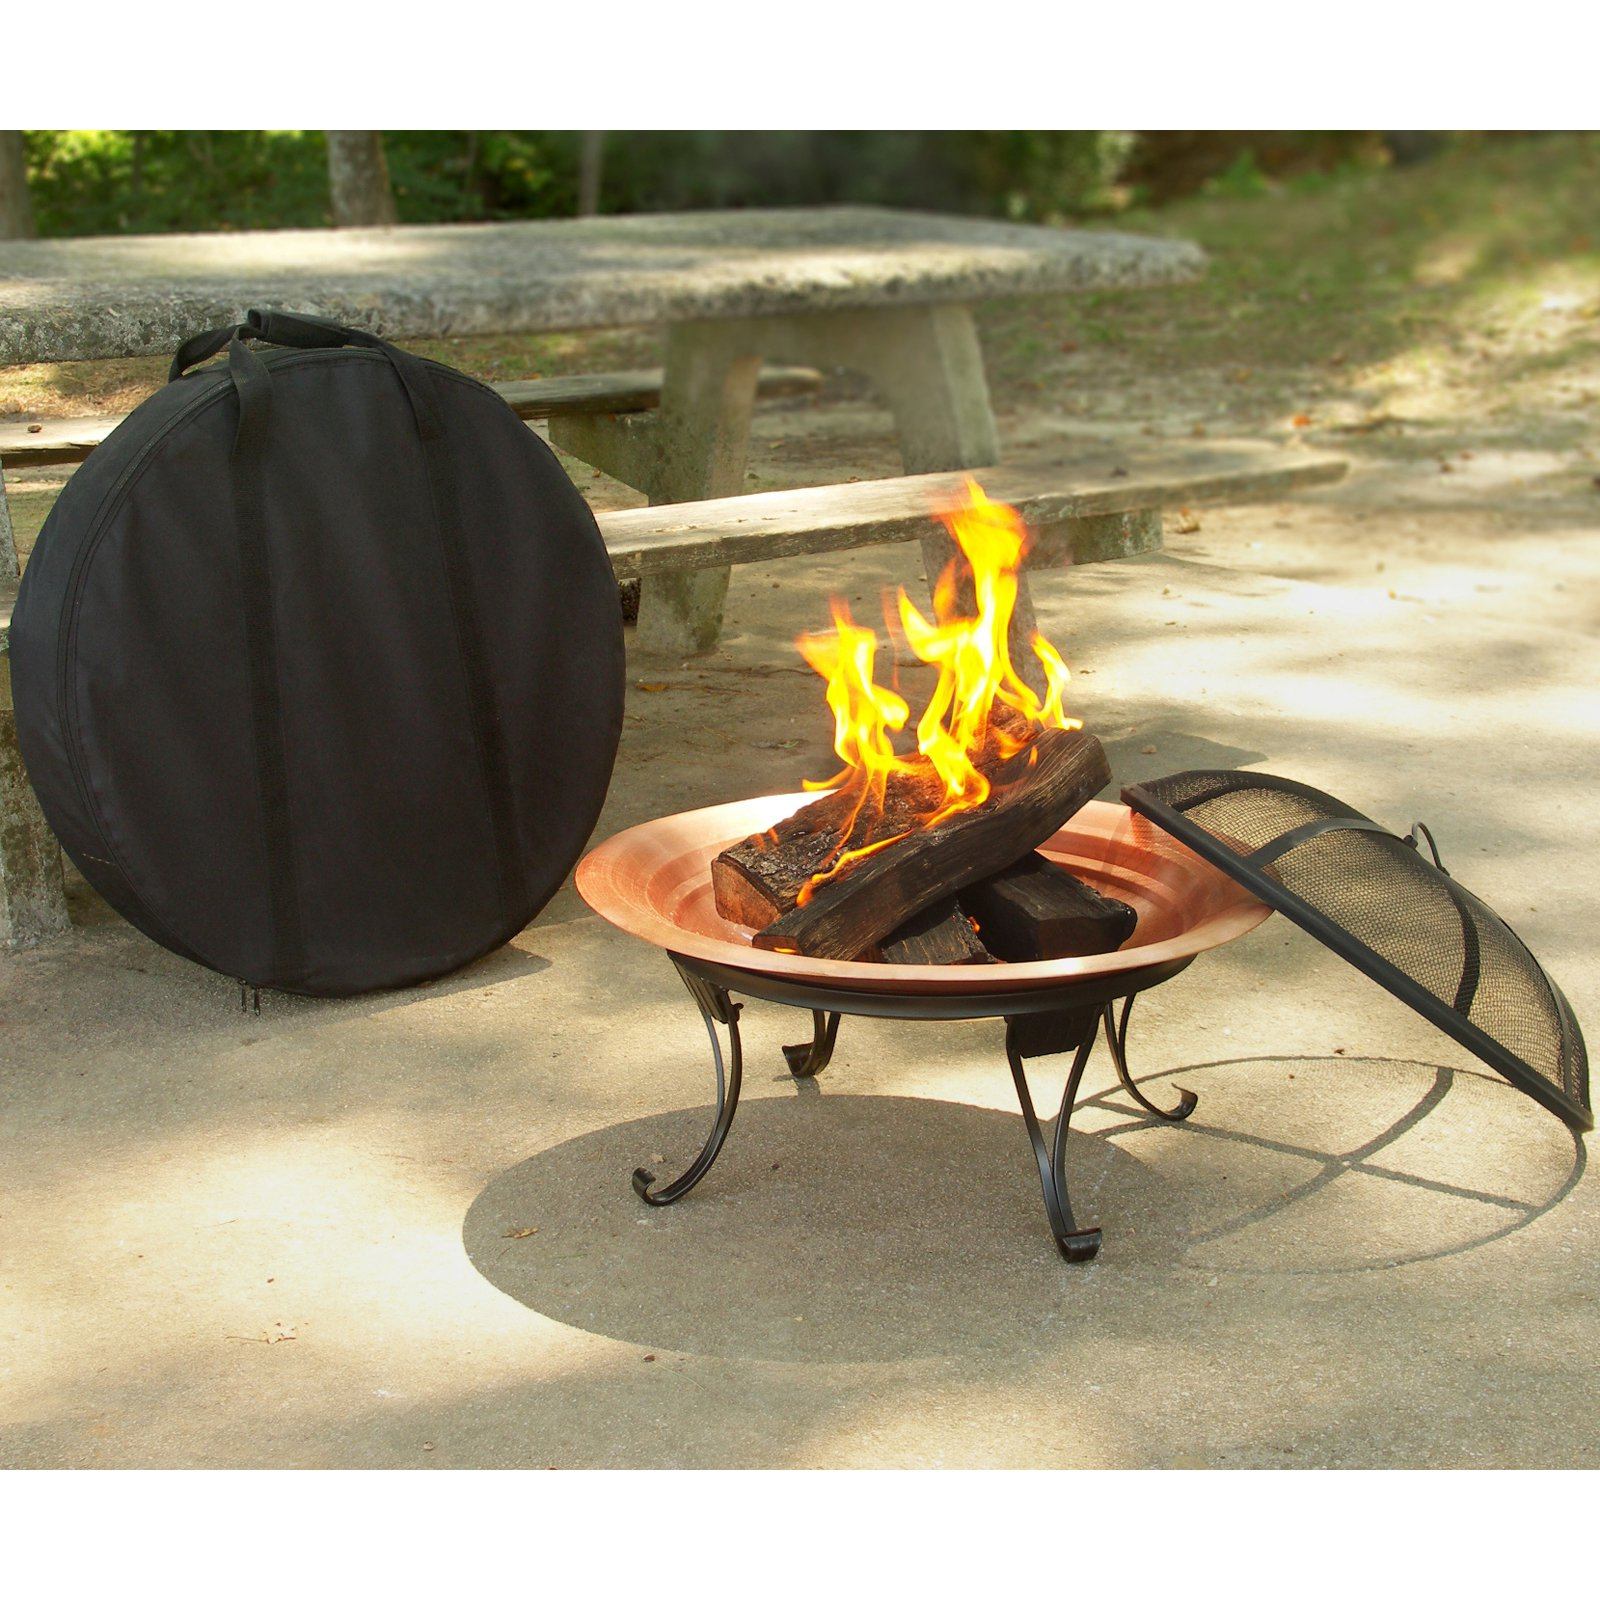 Asia Direct Folding Portable 26 Diam Fire Pit With Free Cover